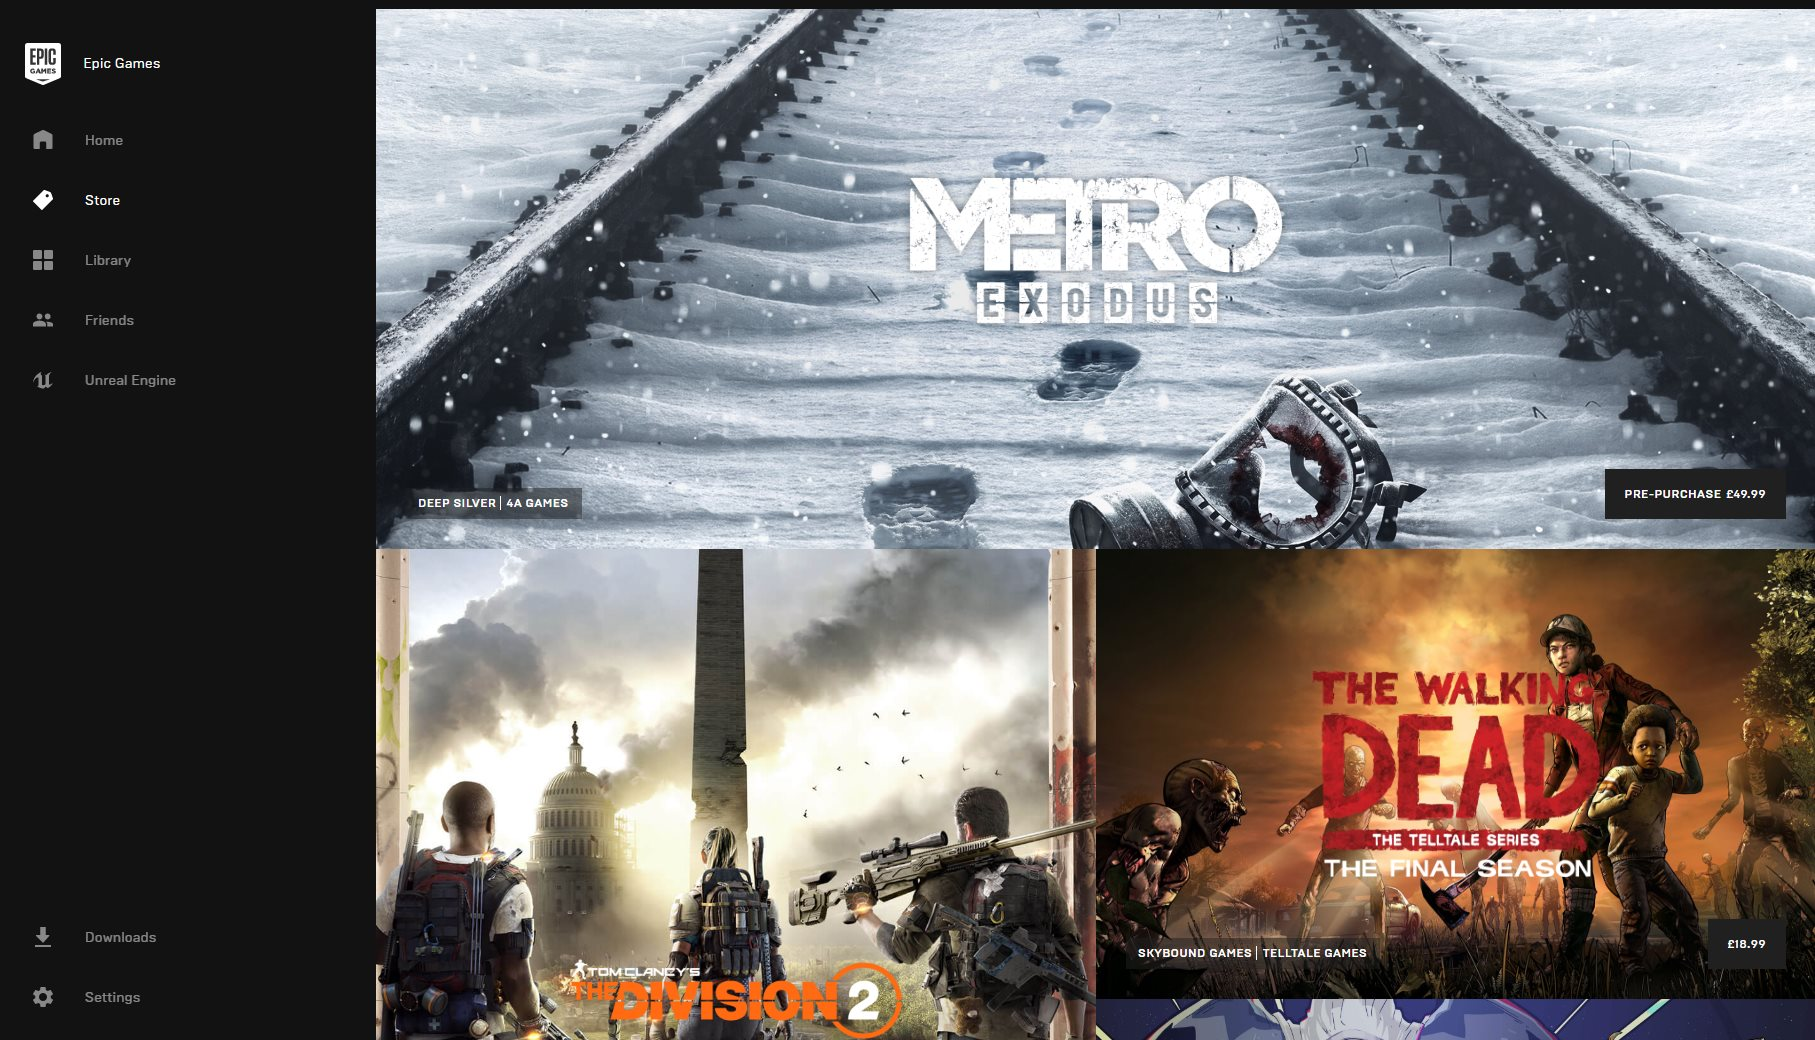 Epic making Metro Exodus an exclusive will not help | Rock Paper Shotgun